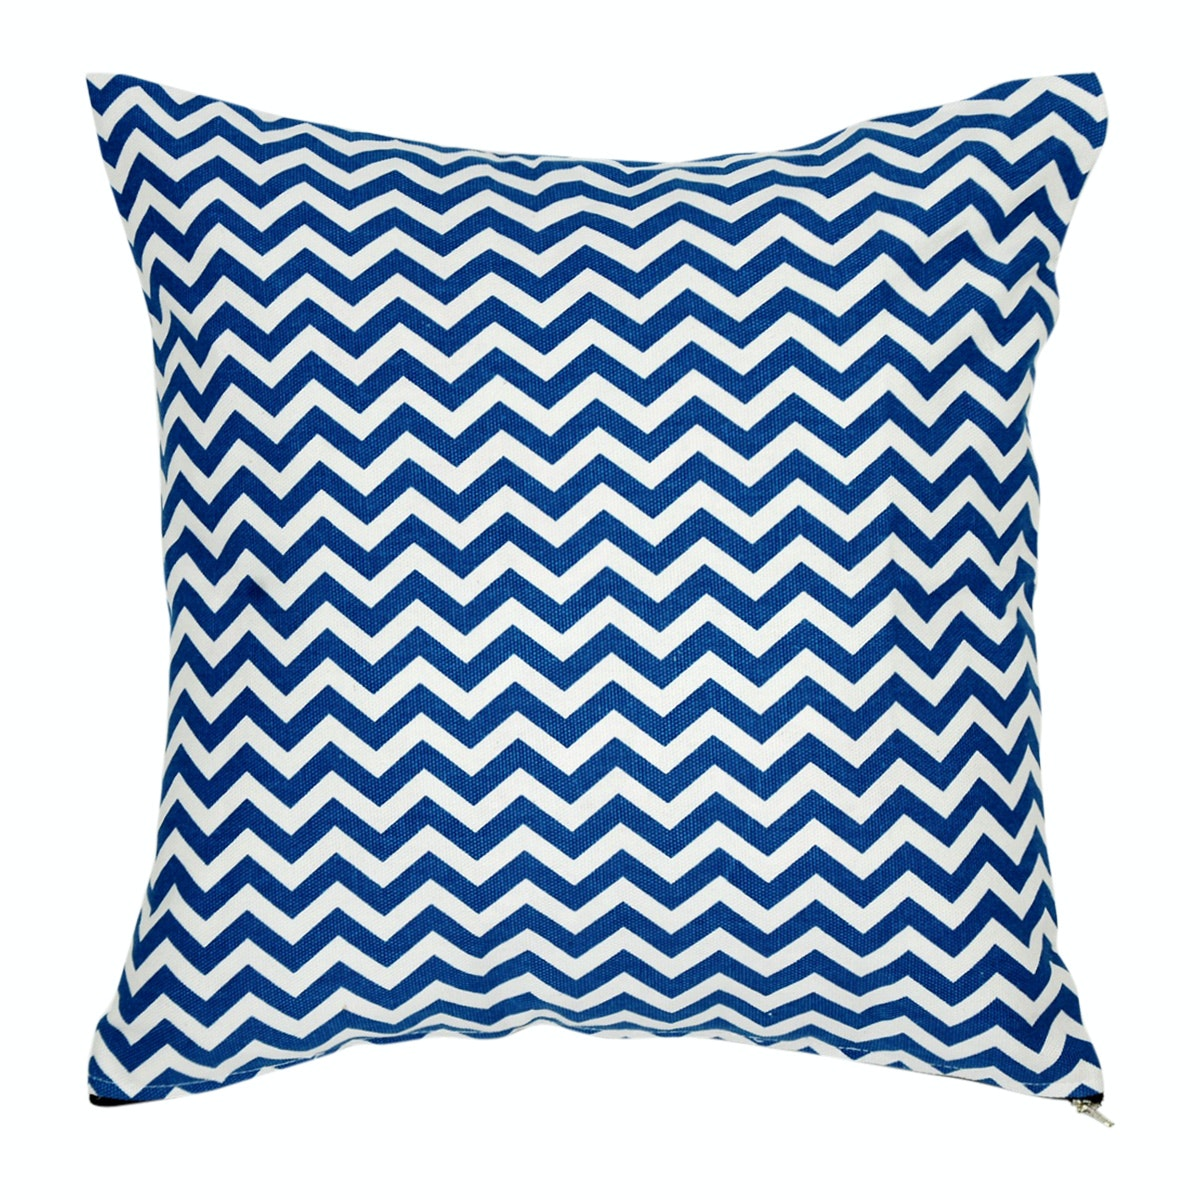 Stiletto In Style Cushion Cover / Sarung Bantal - Blue Chevron